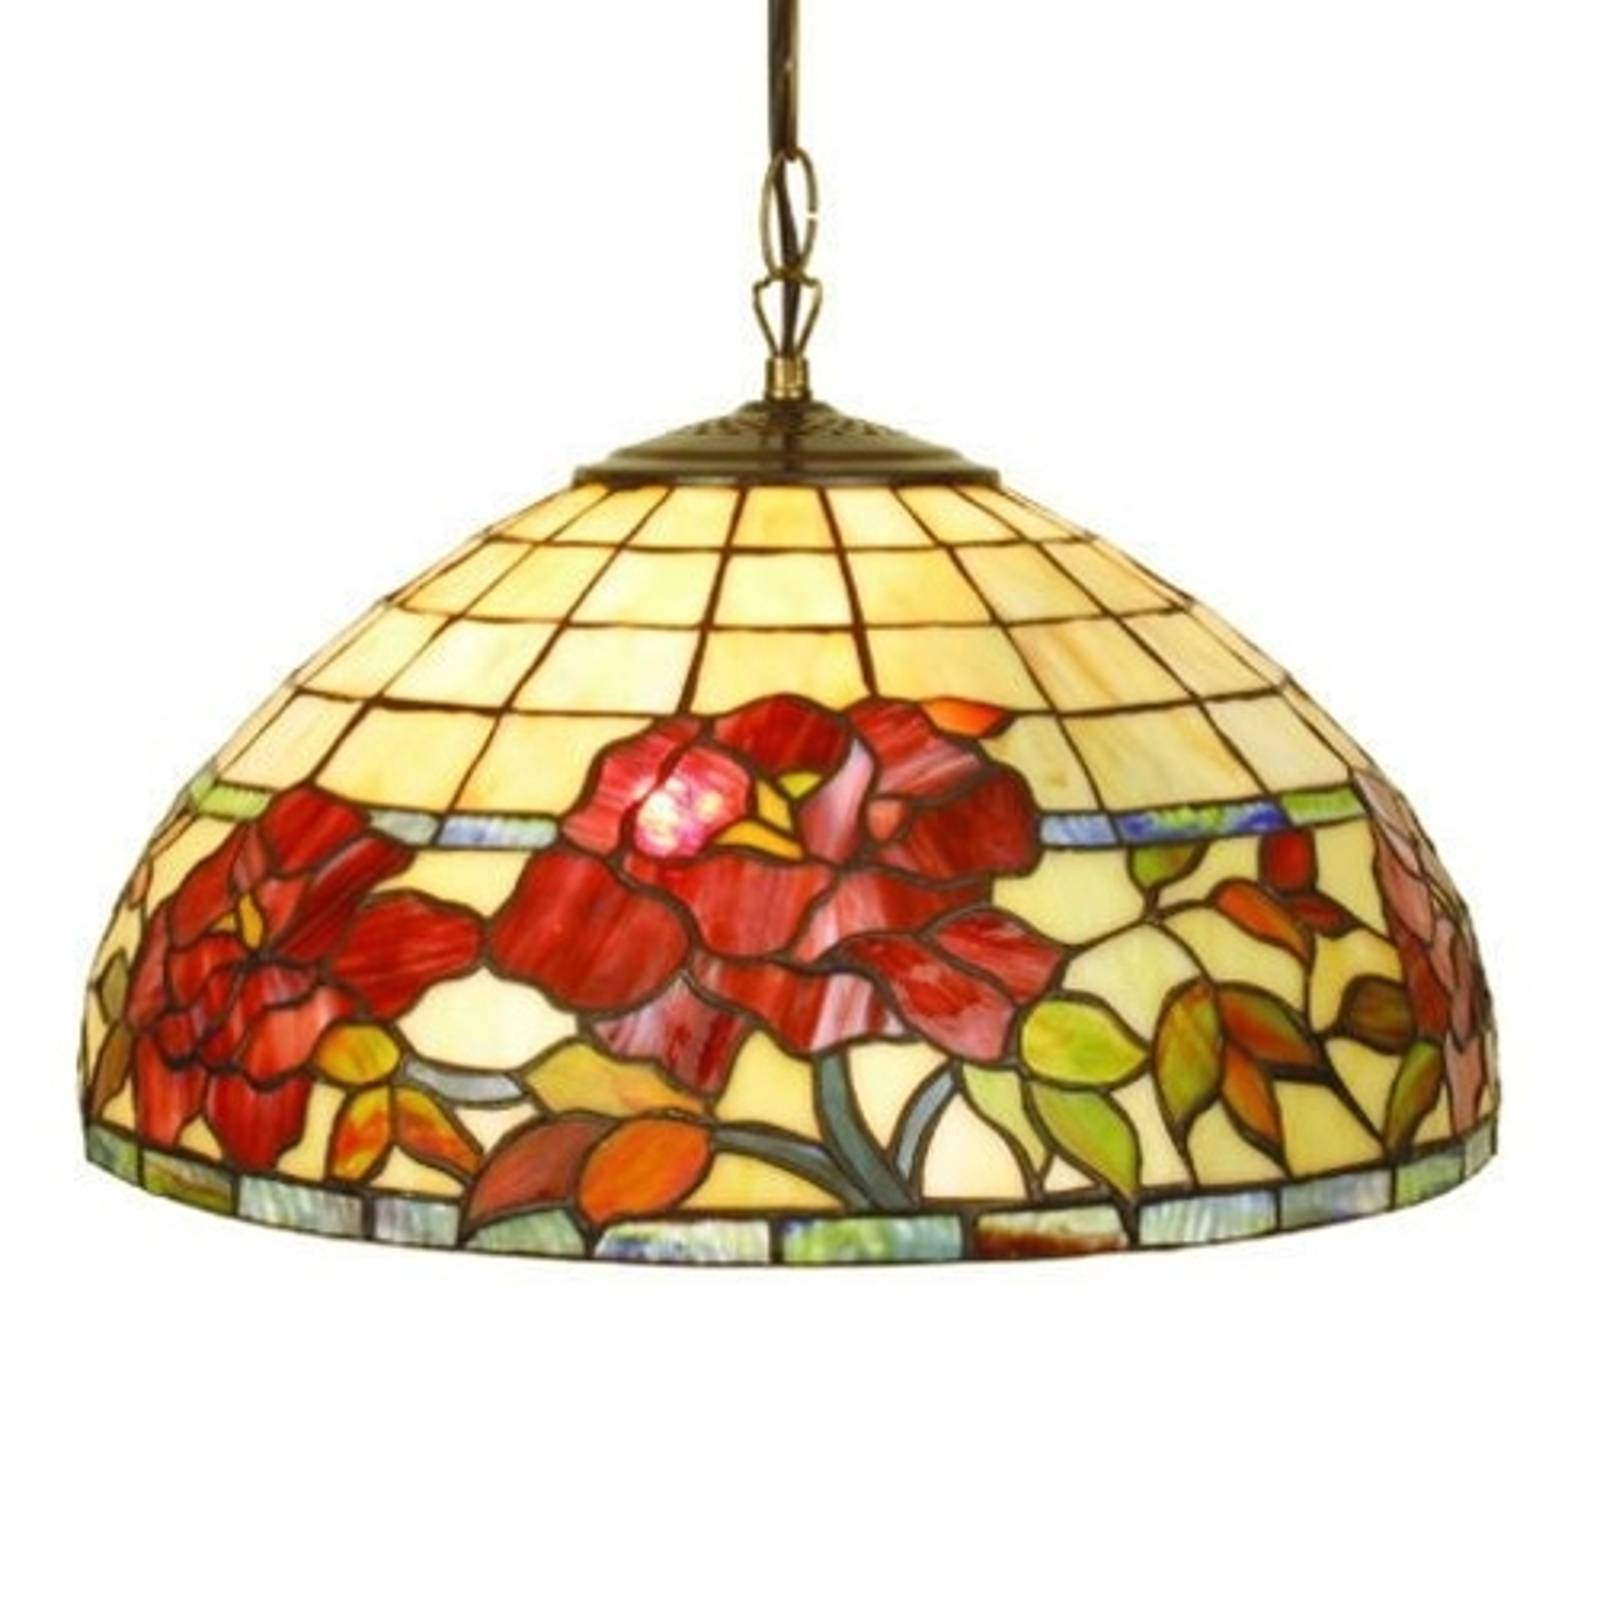 ESMEE ornate hanging light, 1-bulb from ARTISTAR